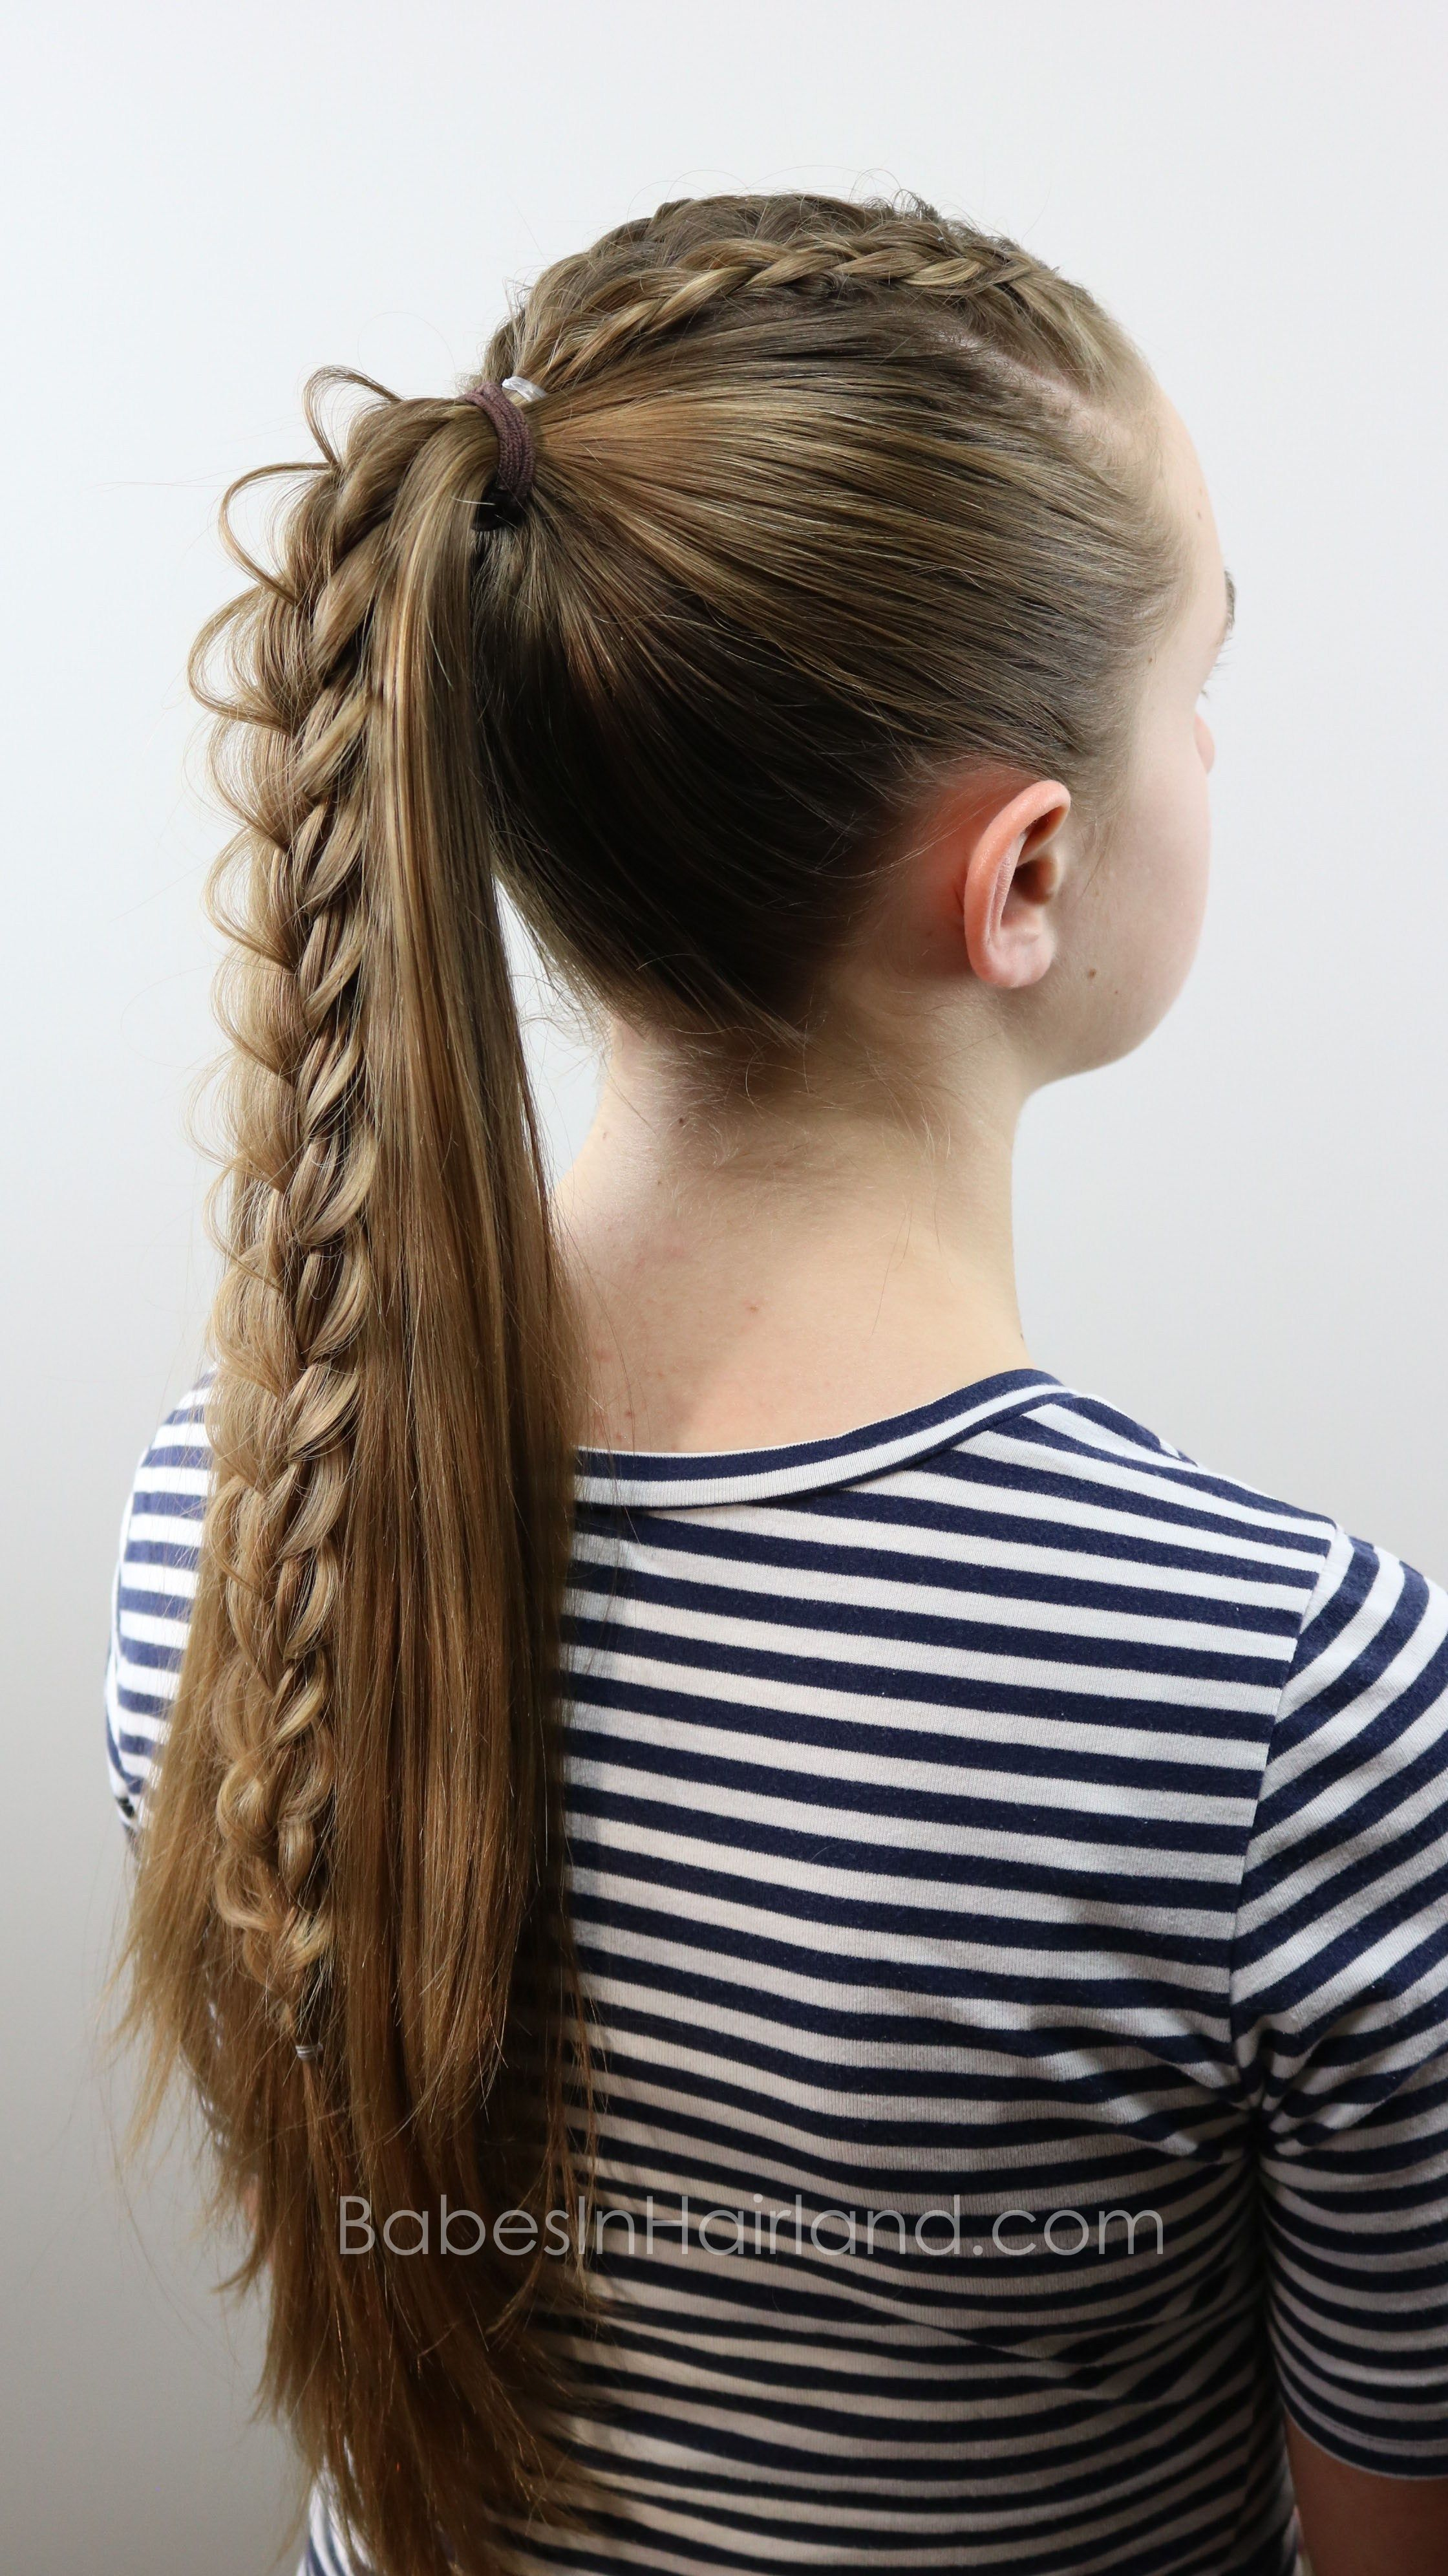 to wear - How to cool create braided hairstyles video